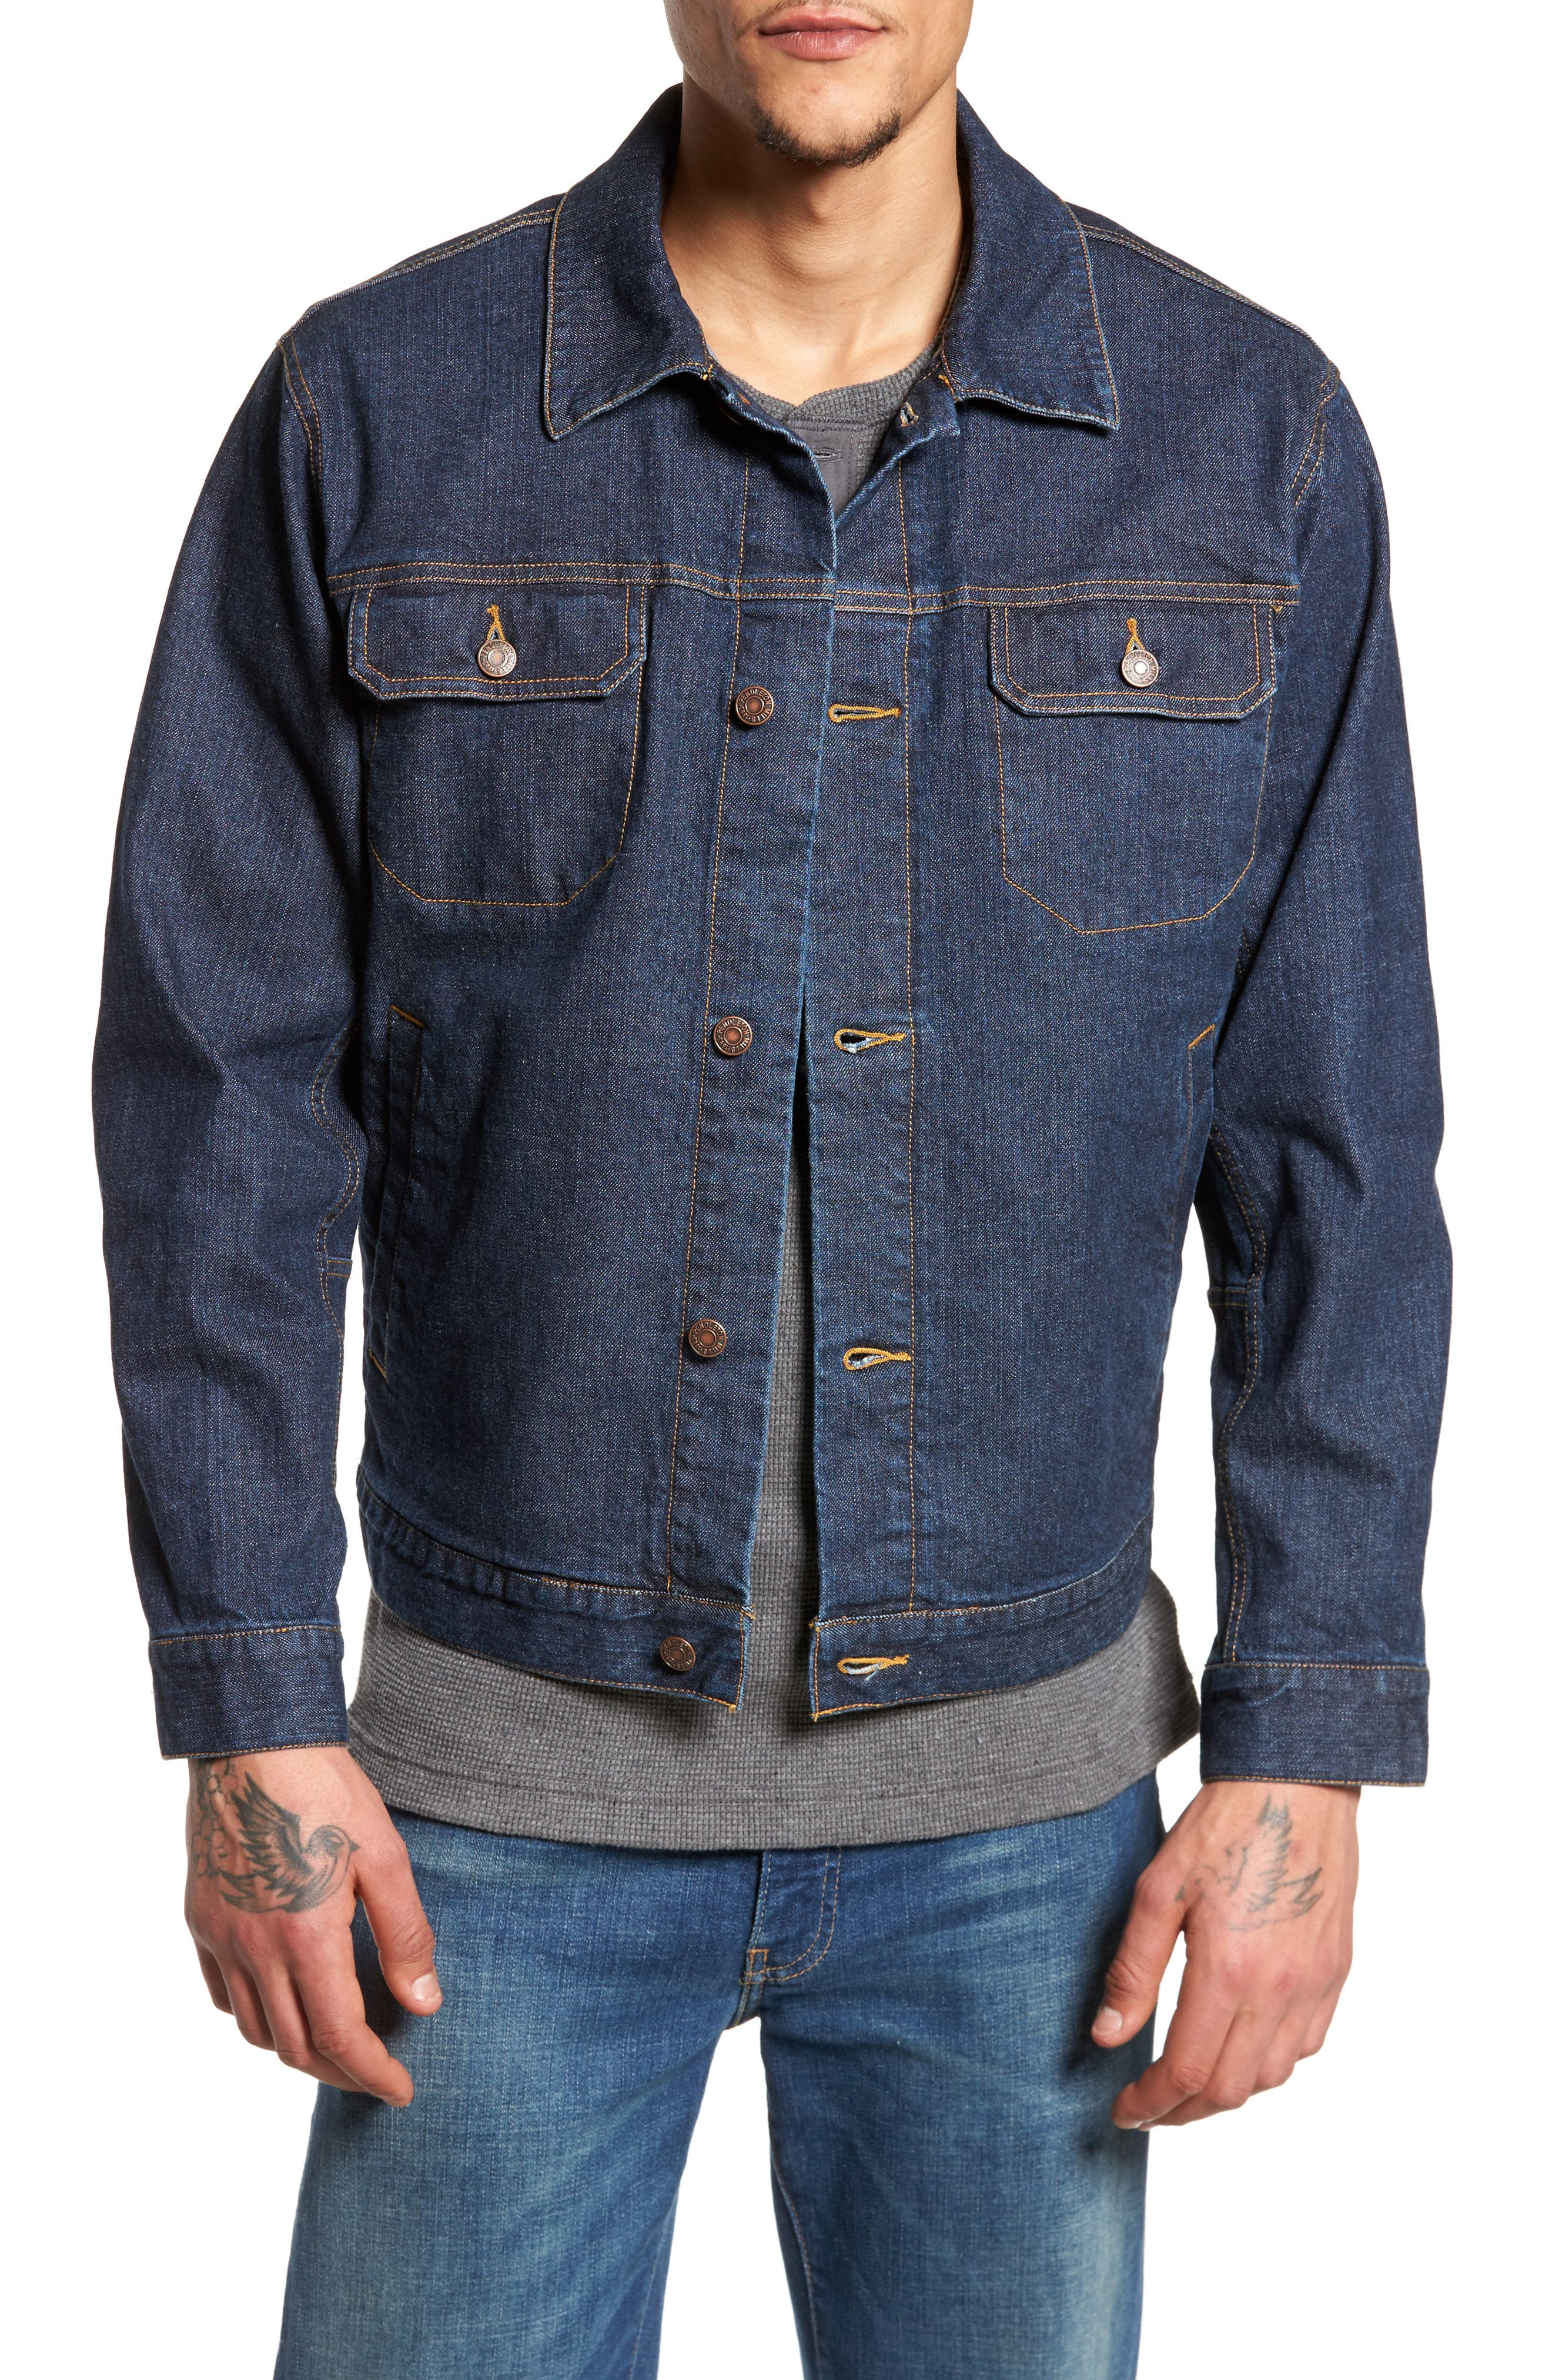 Denim Jacket with Removable Wool Vest,                             Main thumbnail 1, color,                             Denim With Broken Arrow Red